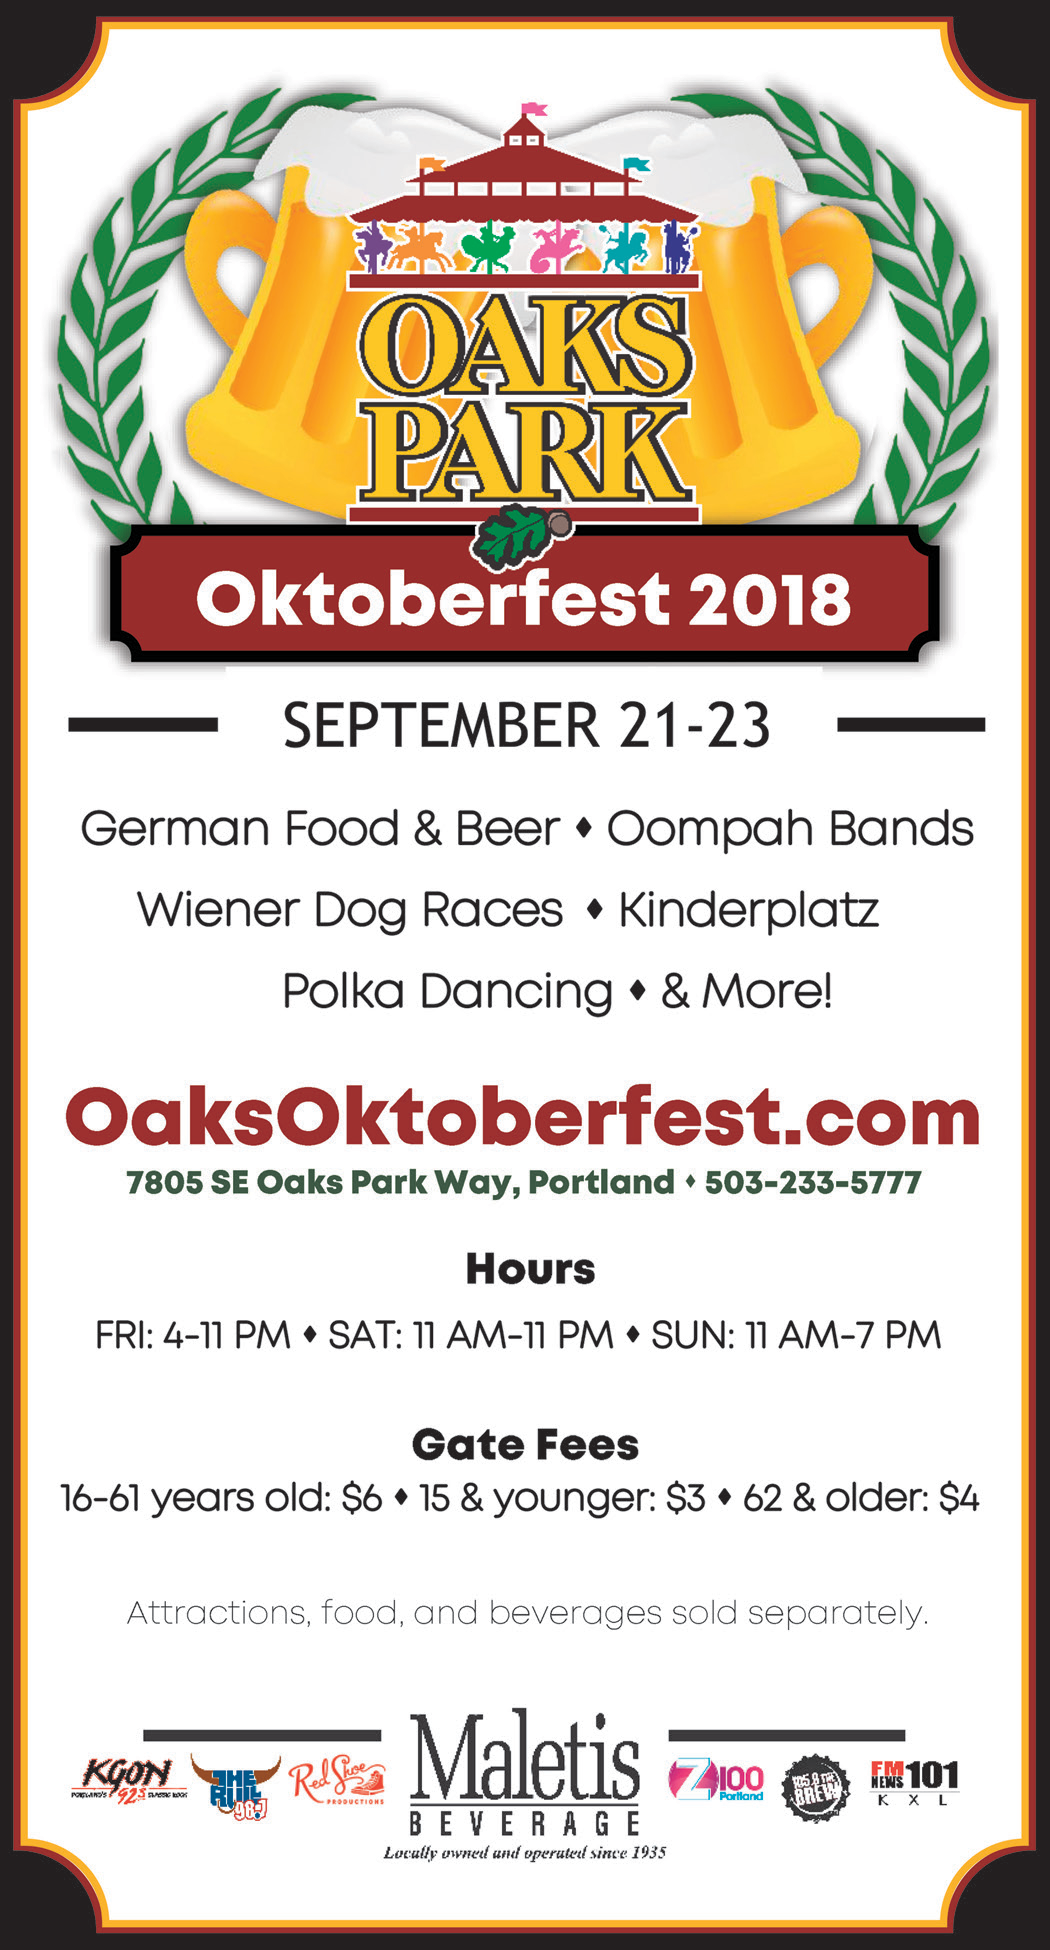 German Food & Beer Oompah Bands Festival in Portland, OR